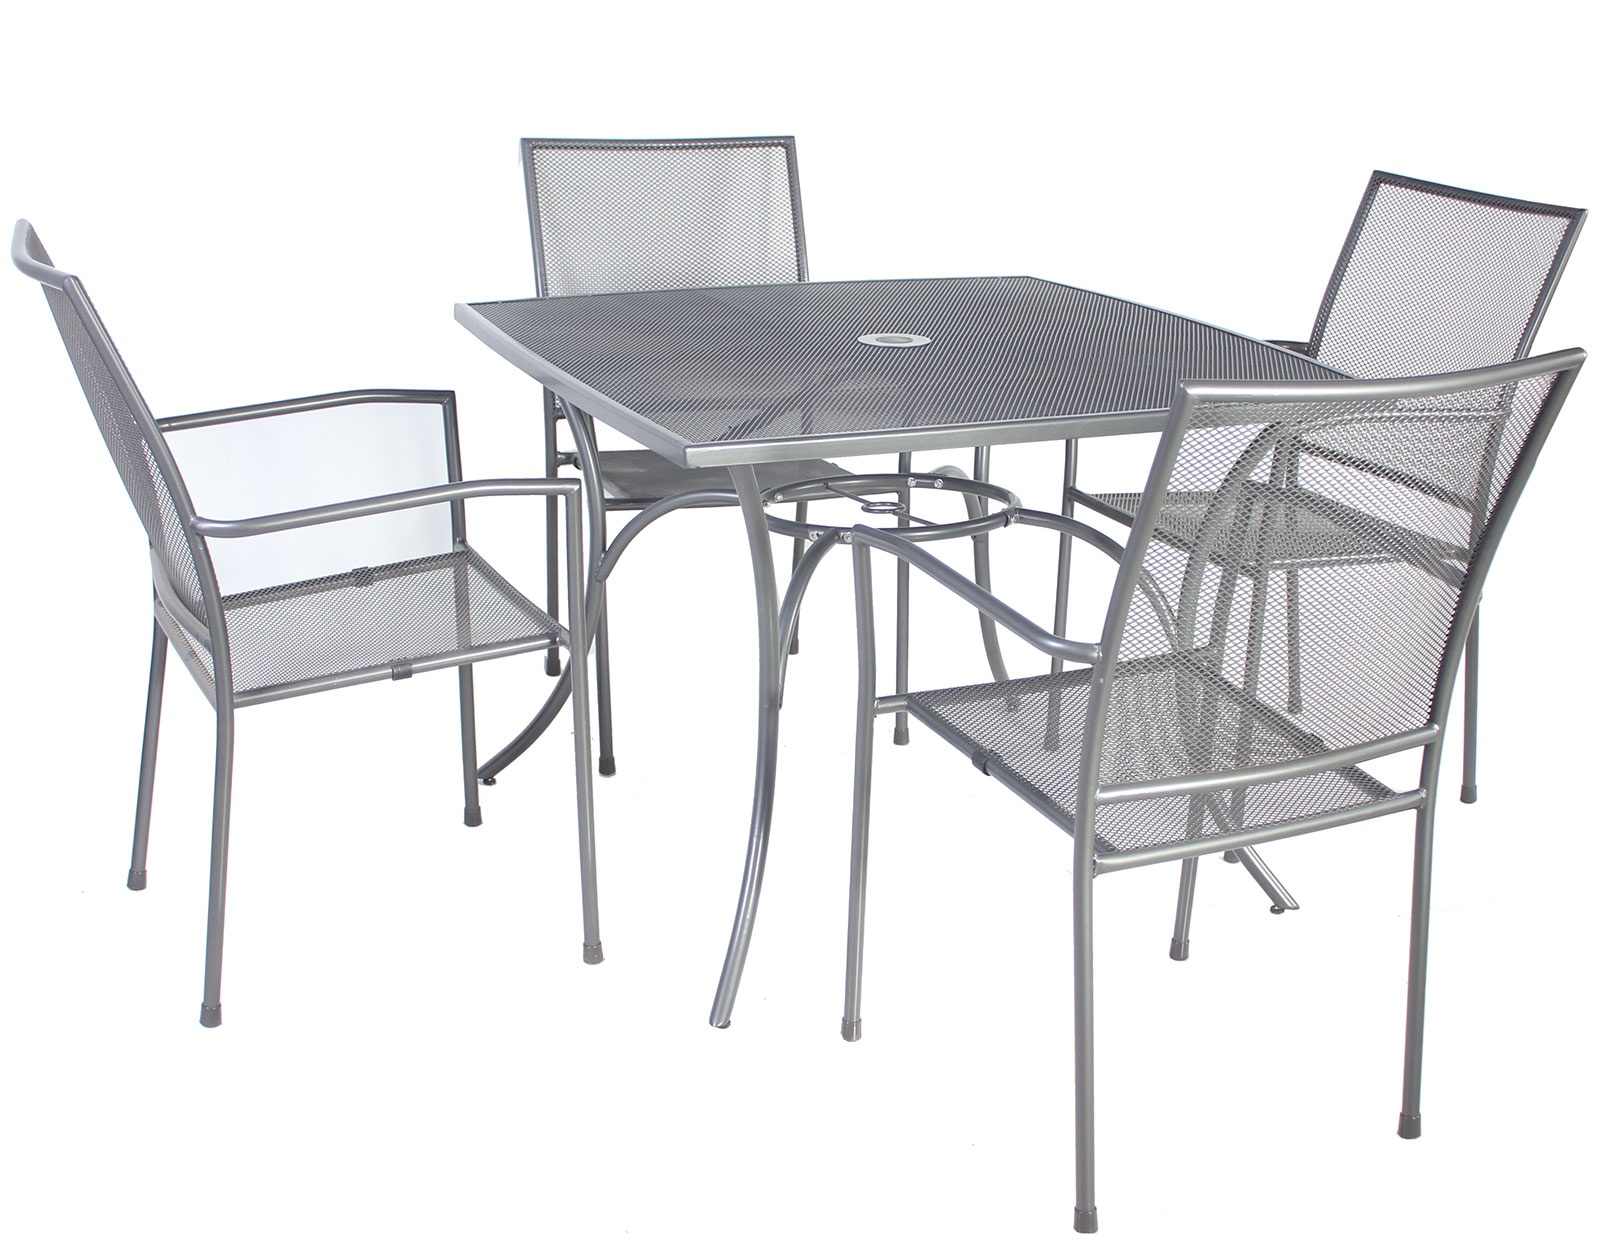 Charles bentley outdoor metal mesh 5 piece table and for Metal patio table and chairs set